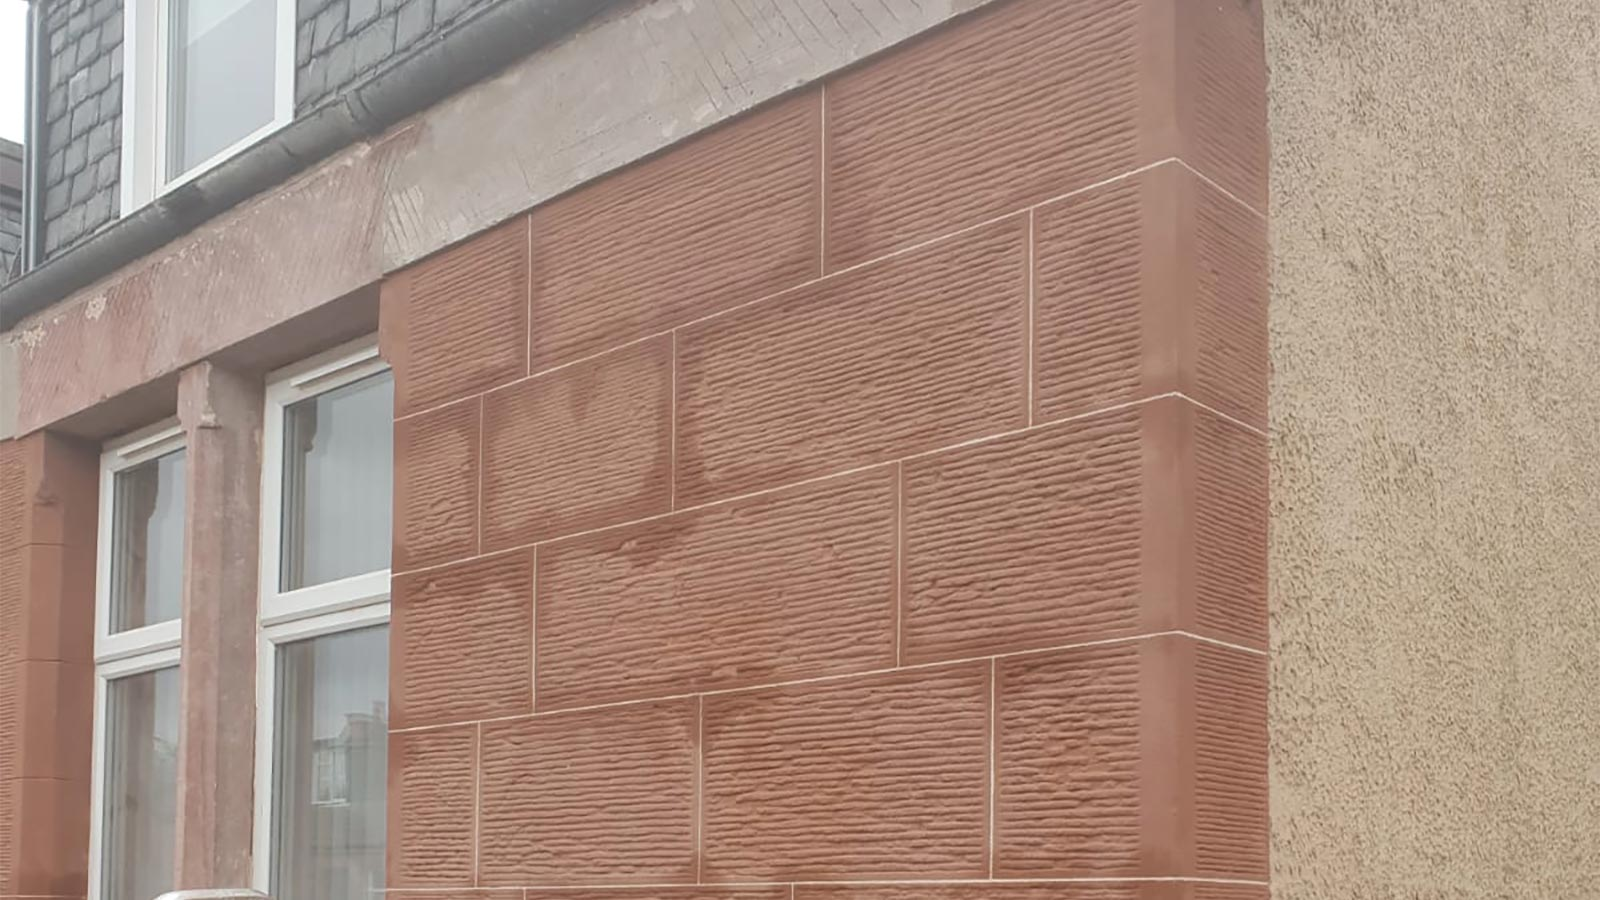 Facade Restoration Project, Middleton Street